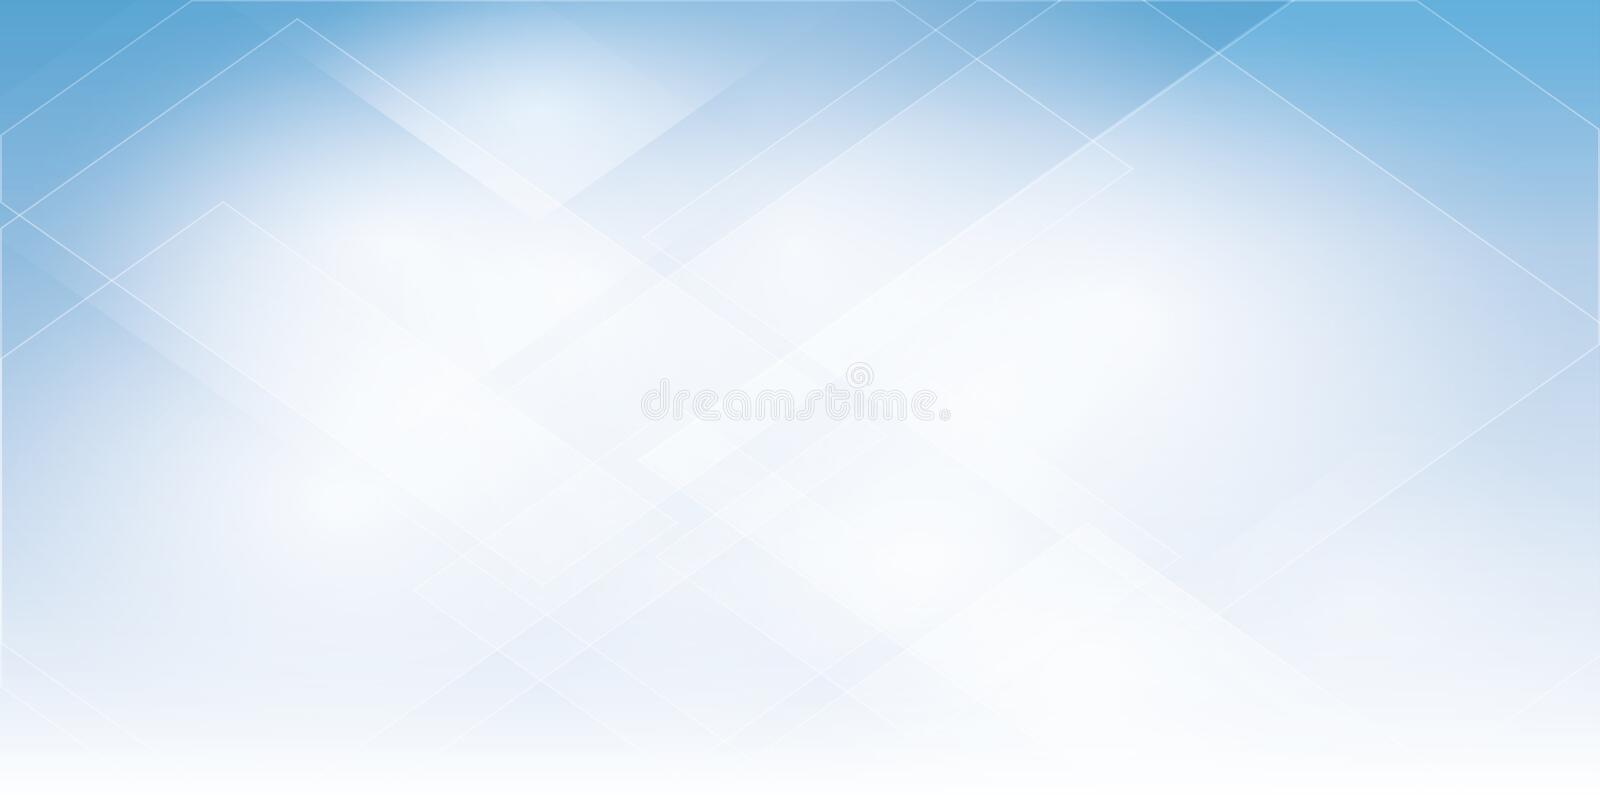 Blue Abstract background geometry shine and layer element vector illustration